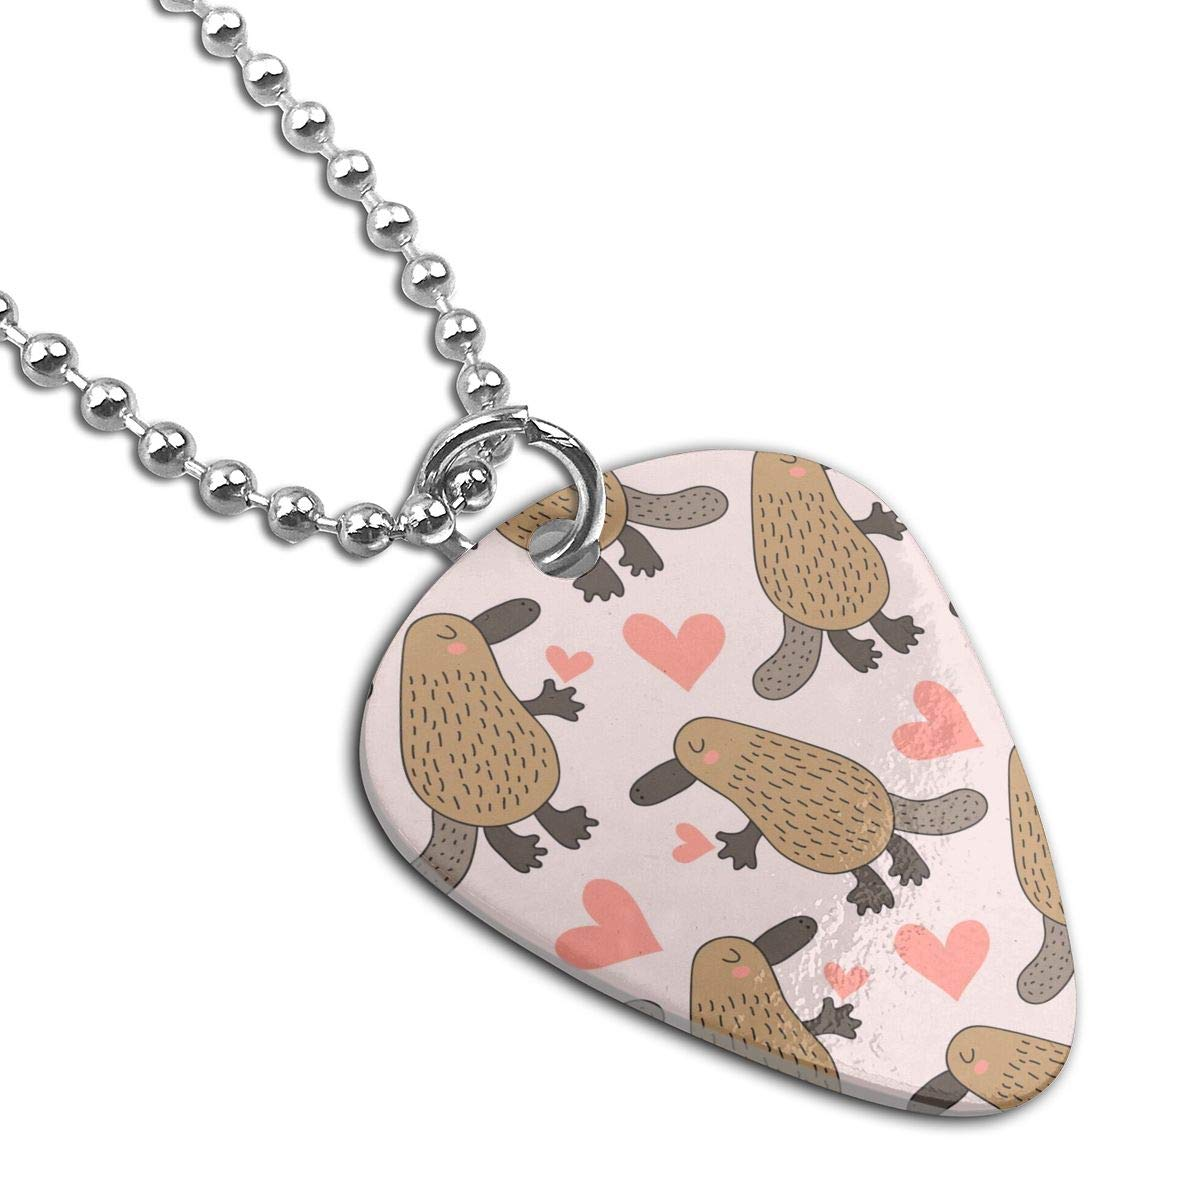 Cute Platypus Custom Guitar Pick Pendant Necklace Keychain